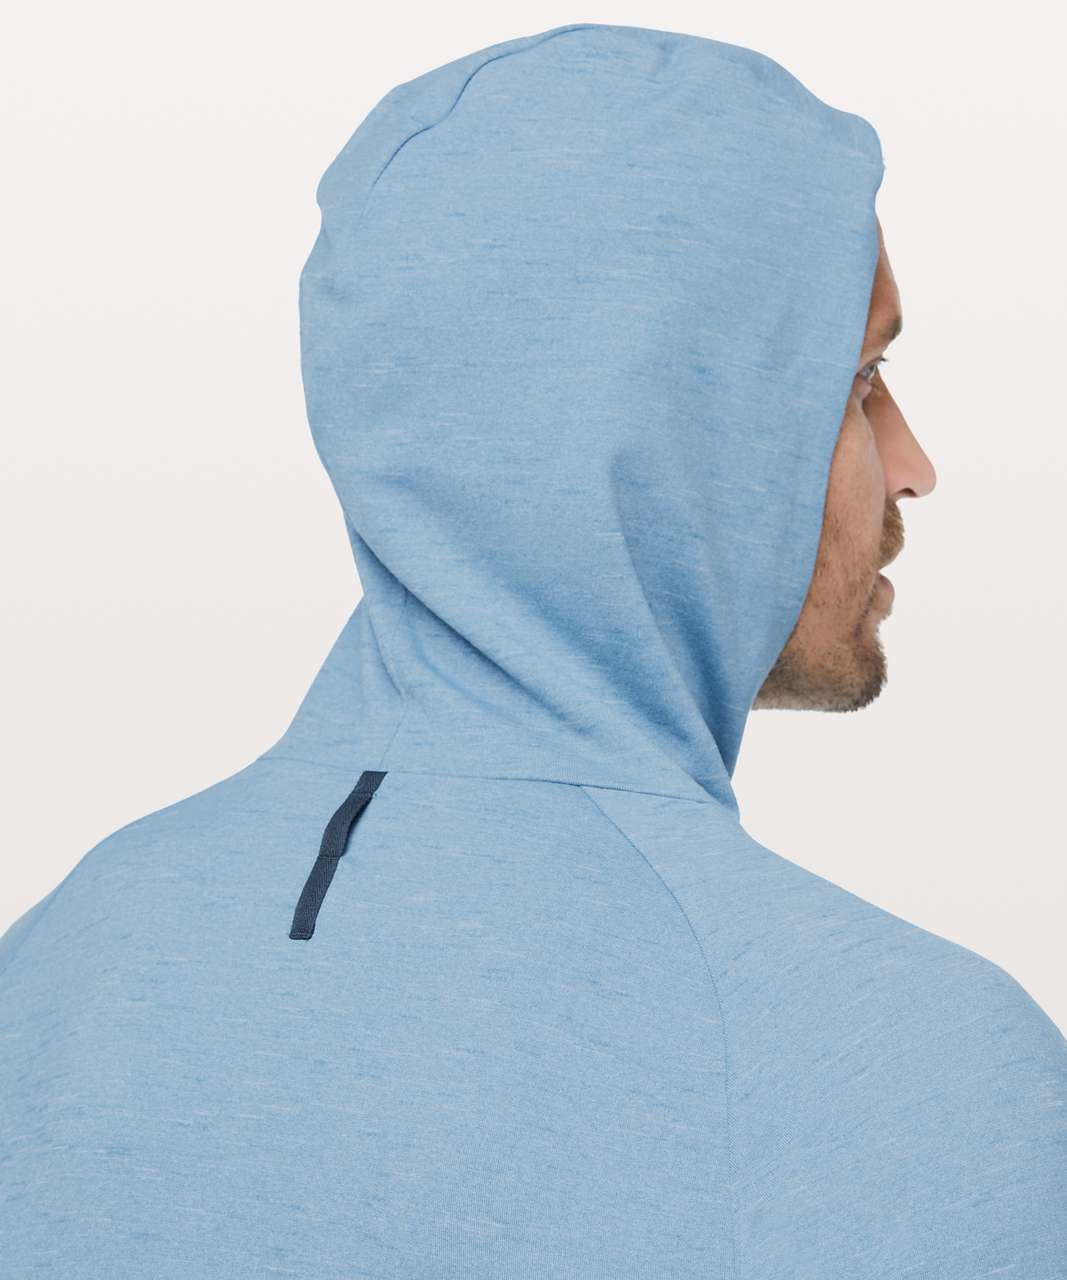 Lululemon Out Of Bounds Hoodie - Heathered Utility Blue